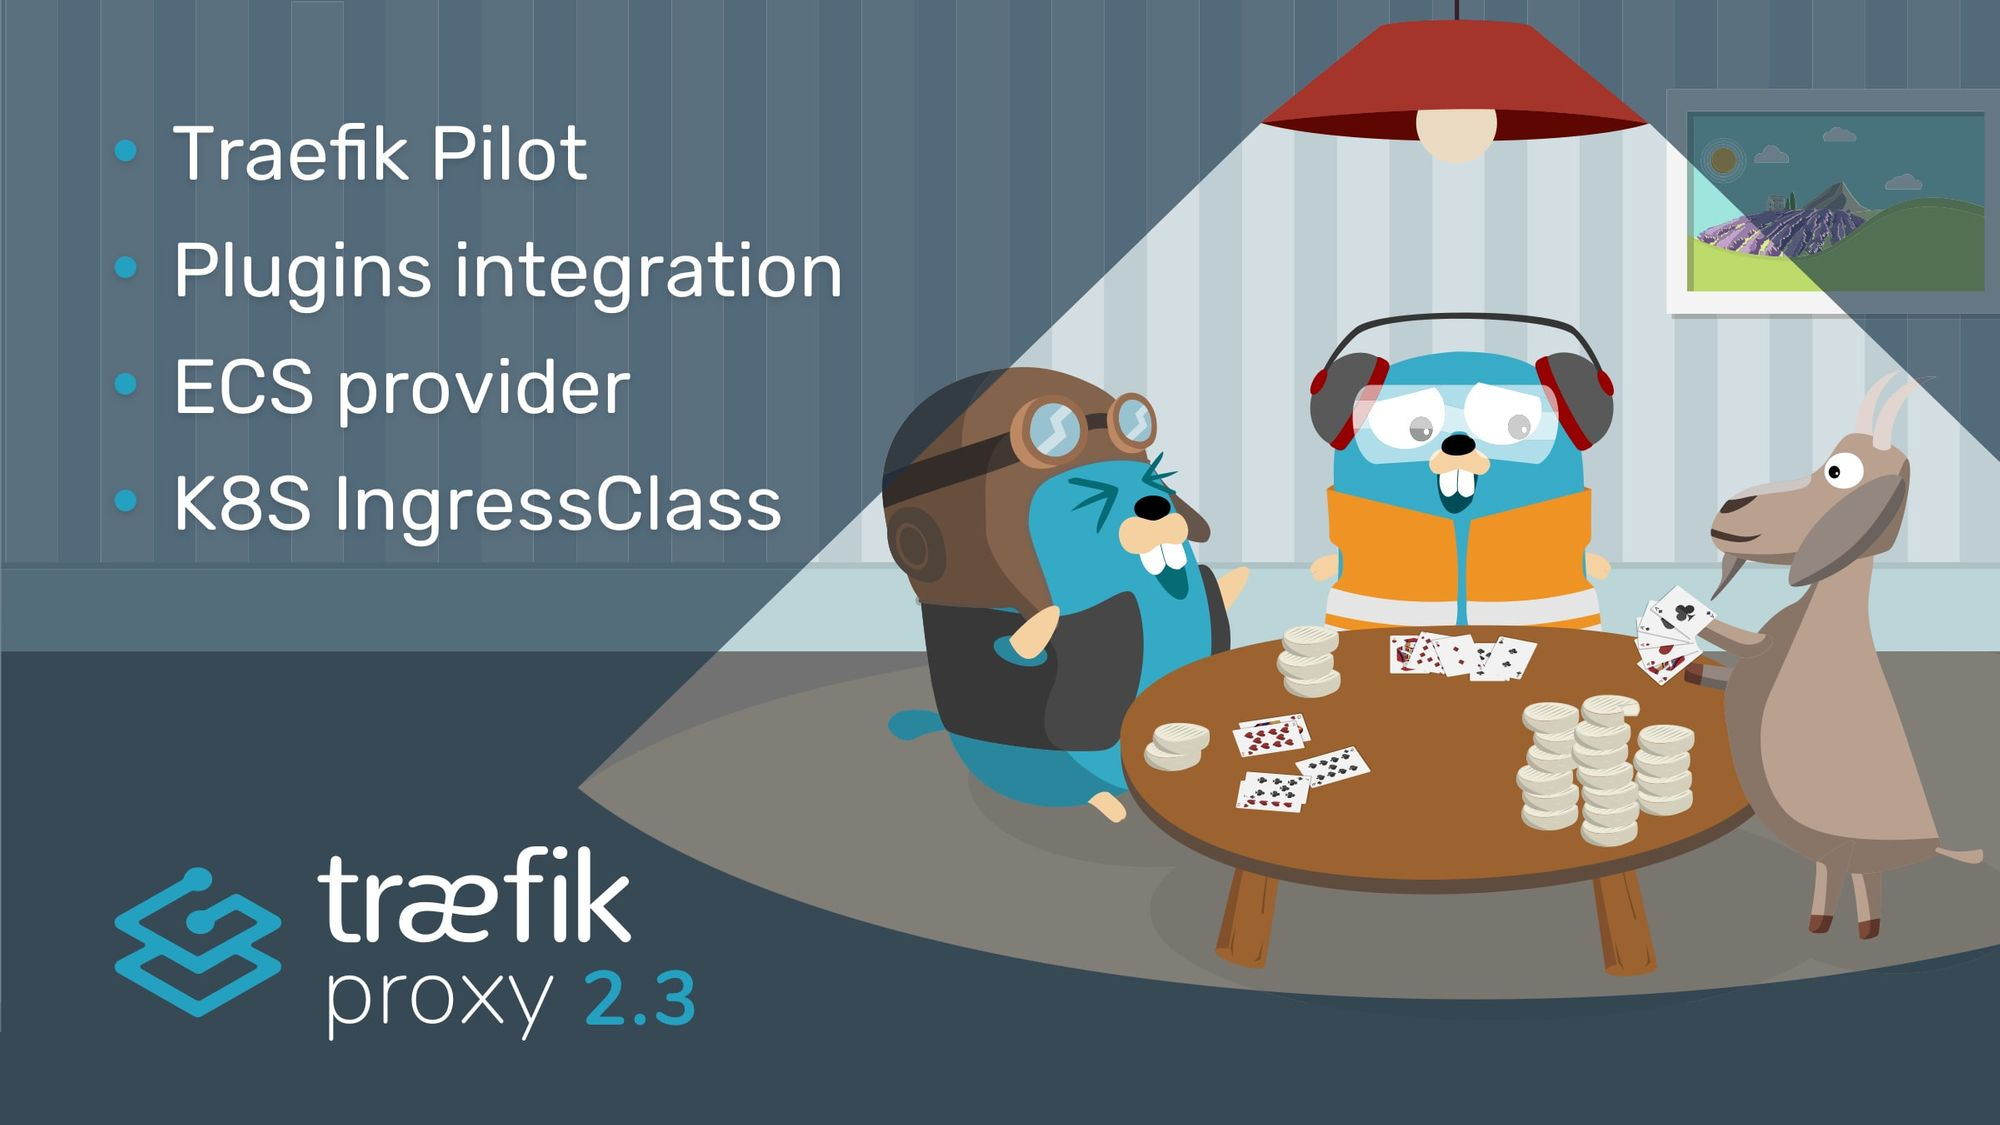 Houston, we have Plugins! Traefik 2.3 Announcement